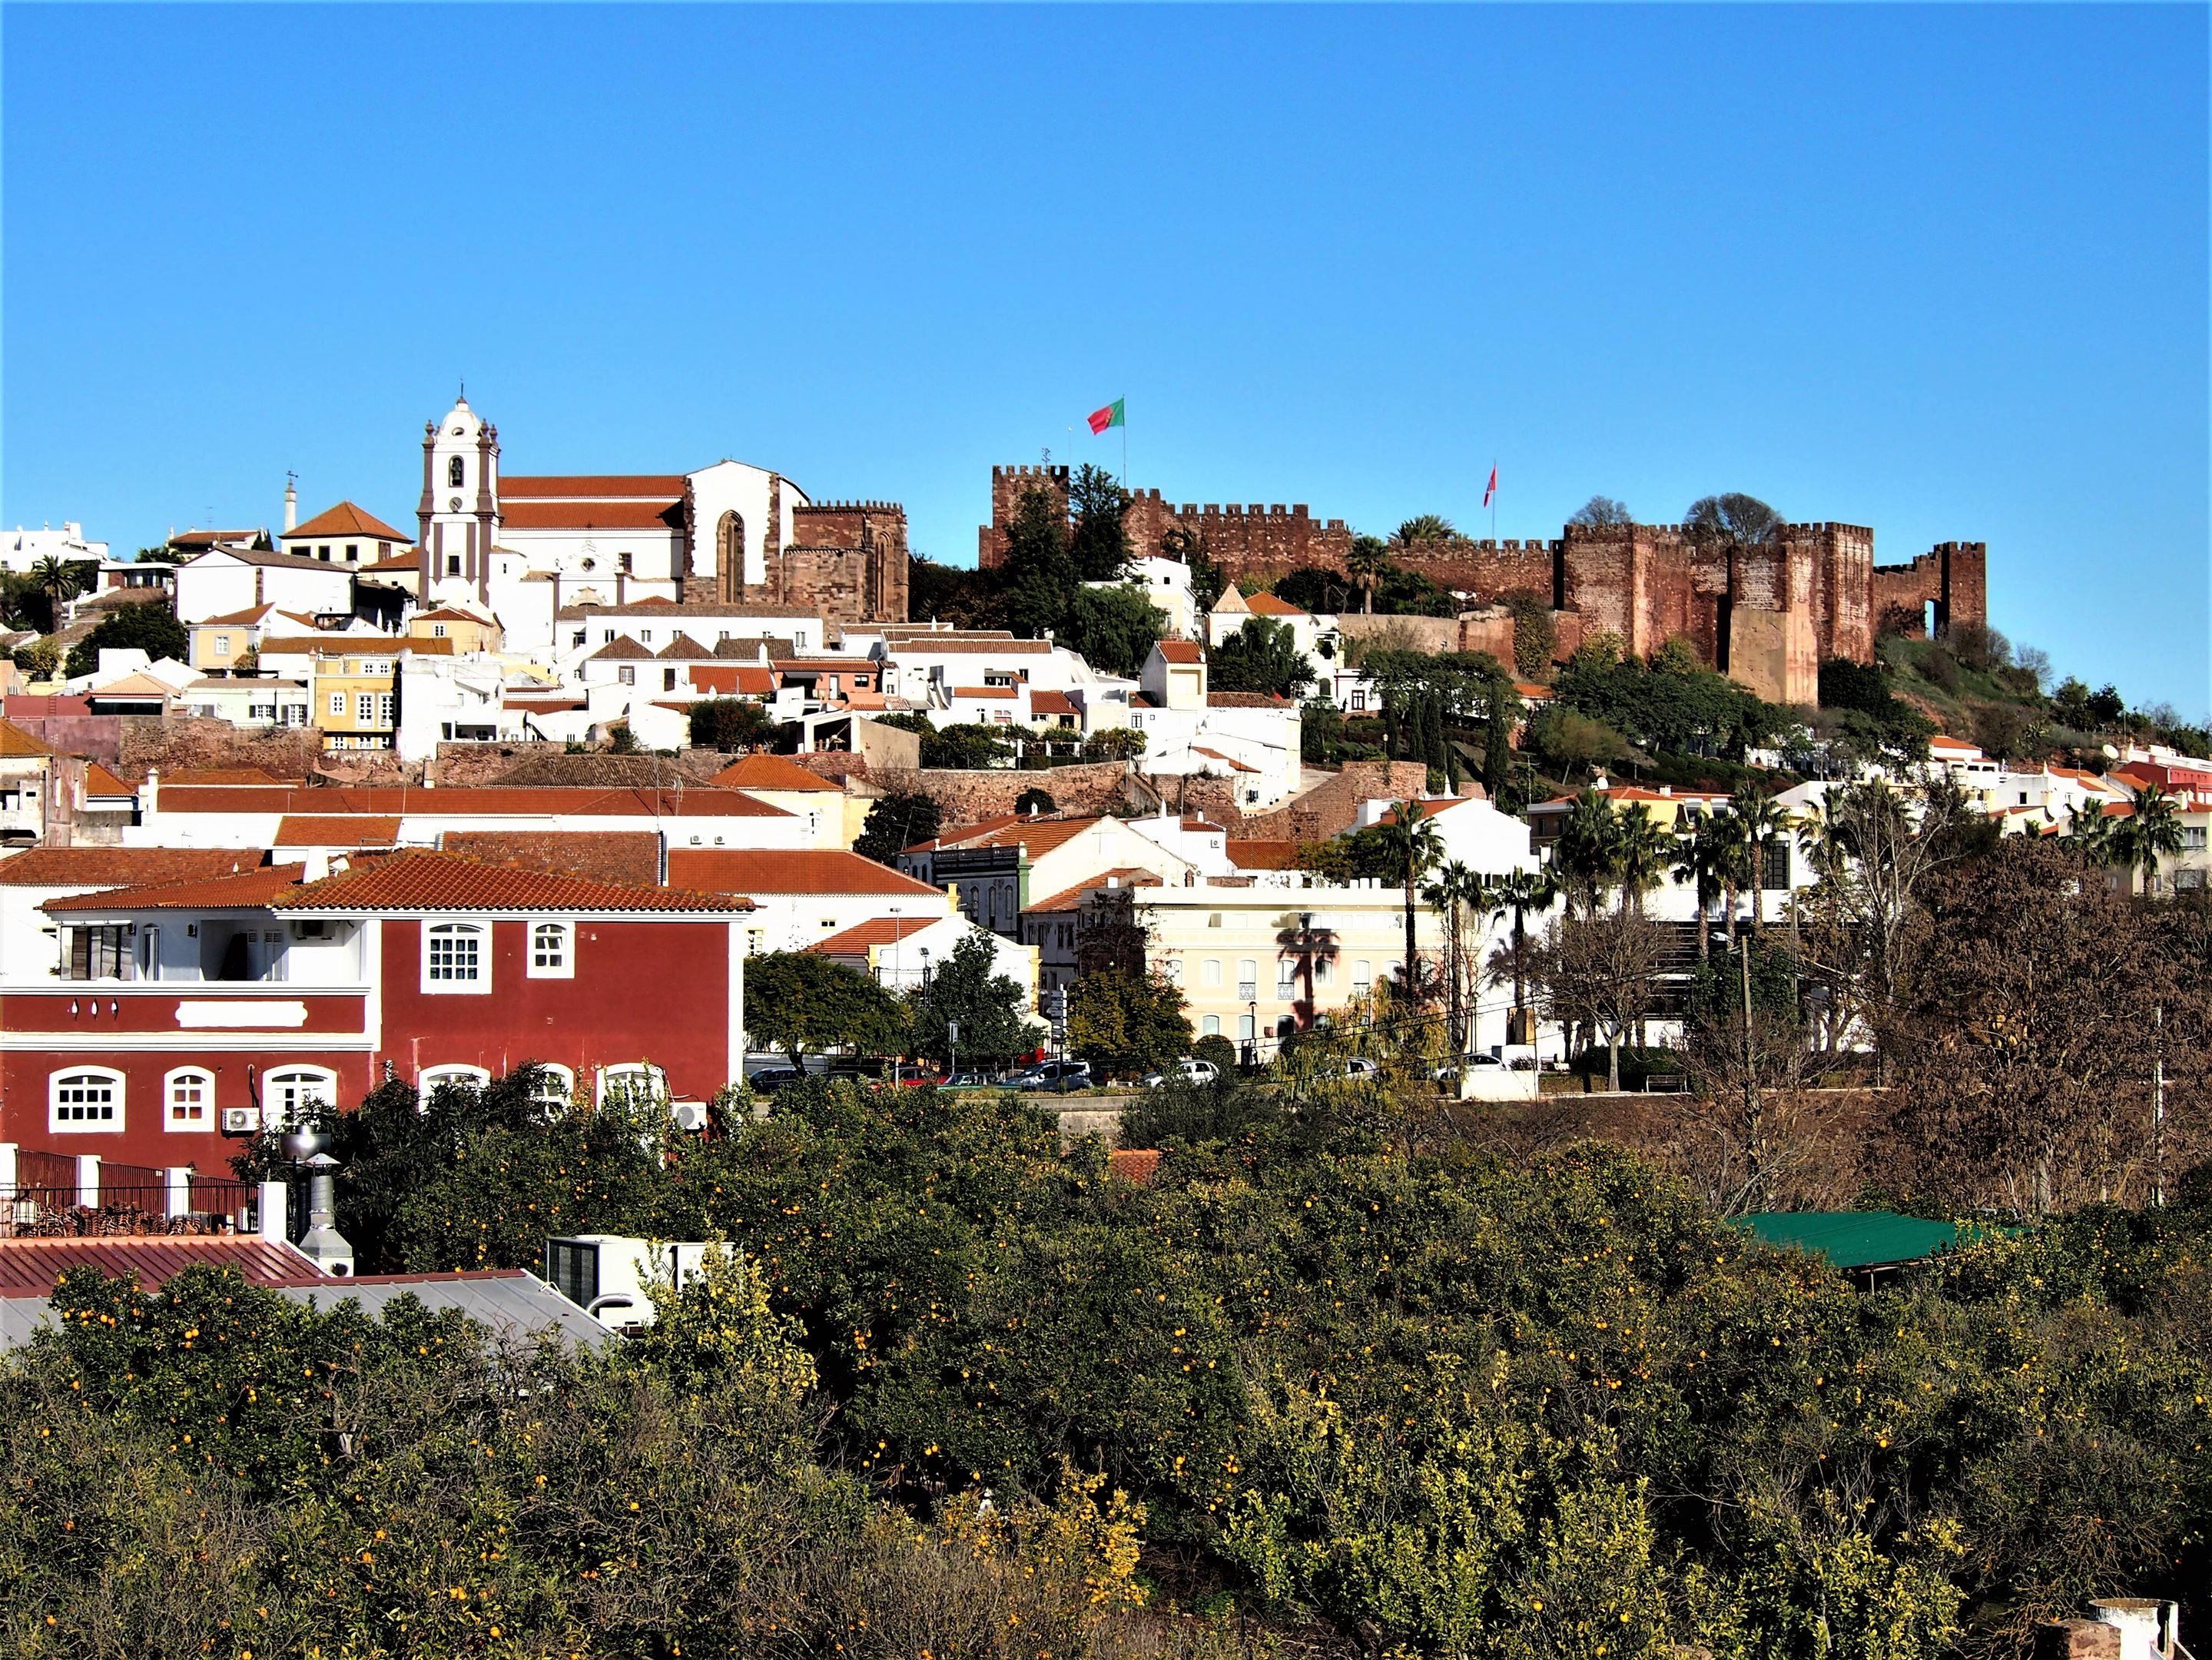 View up the hill towards Silves Castle on the right and Silves Cathedral on the left